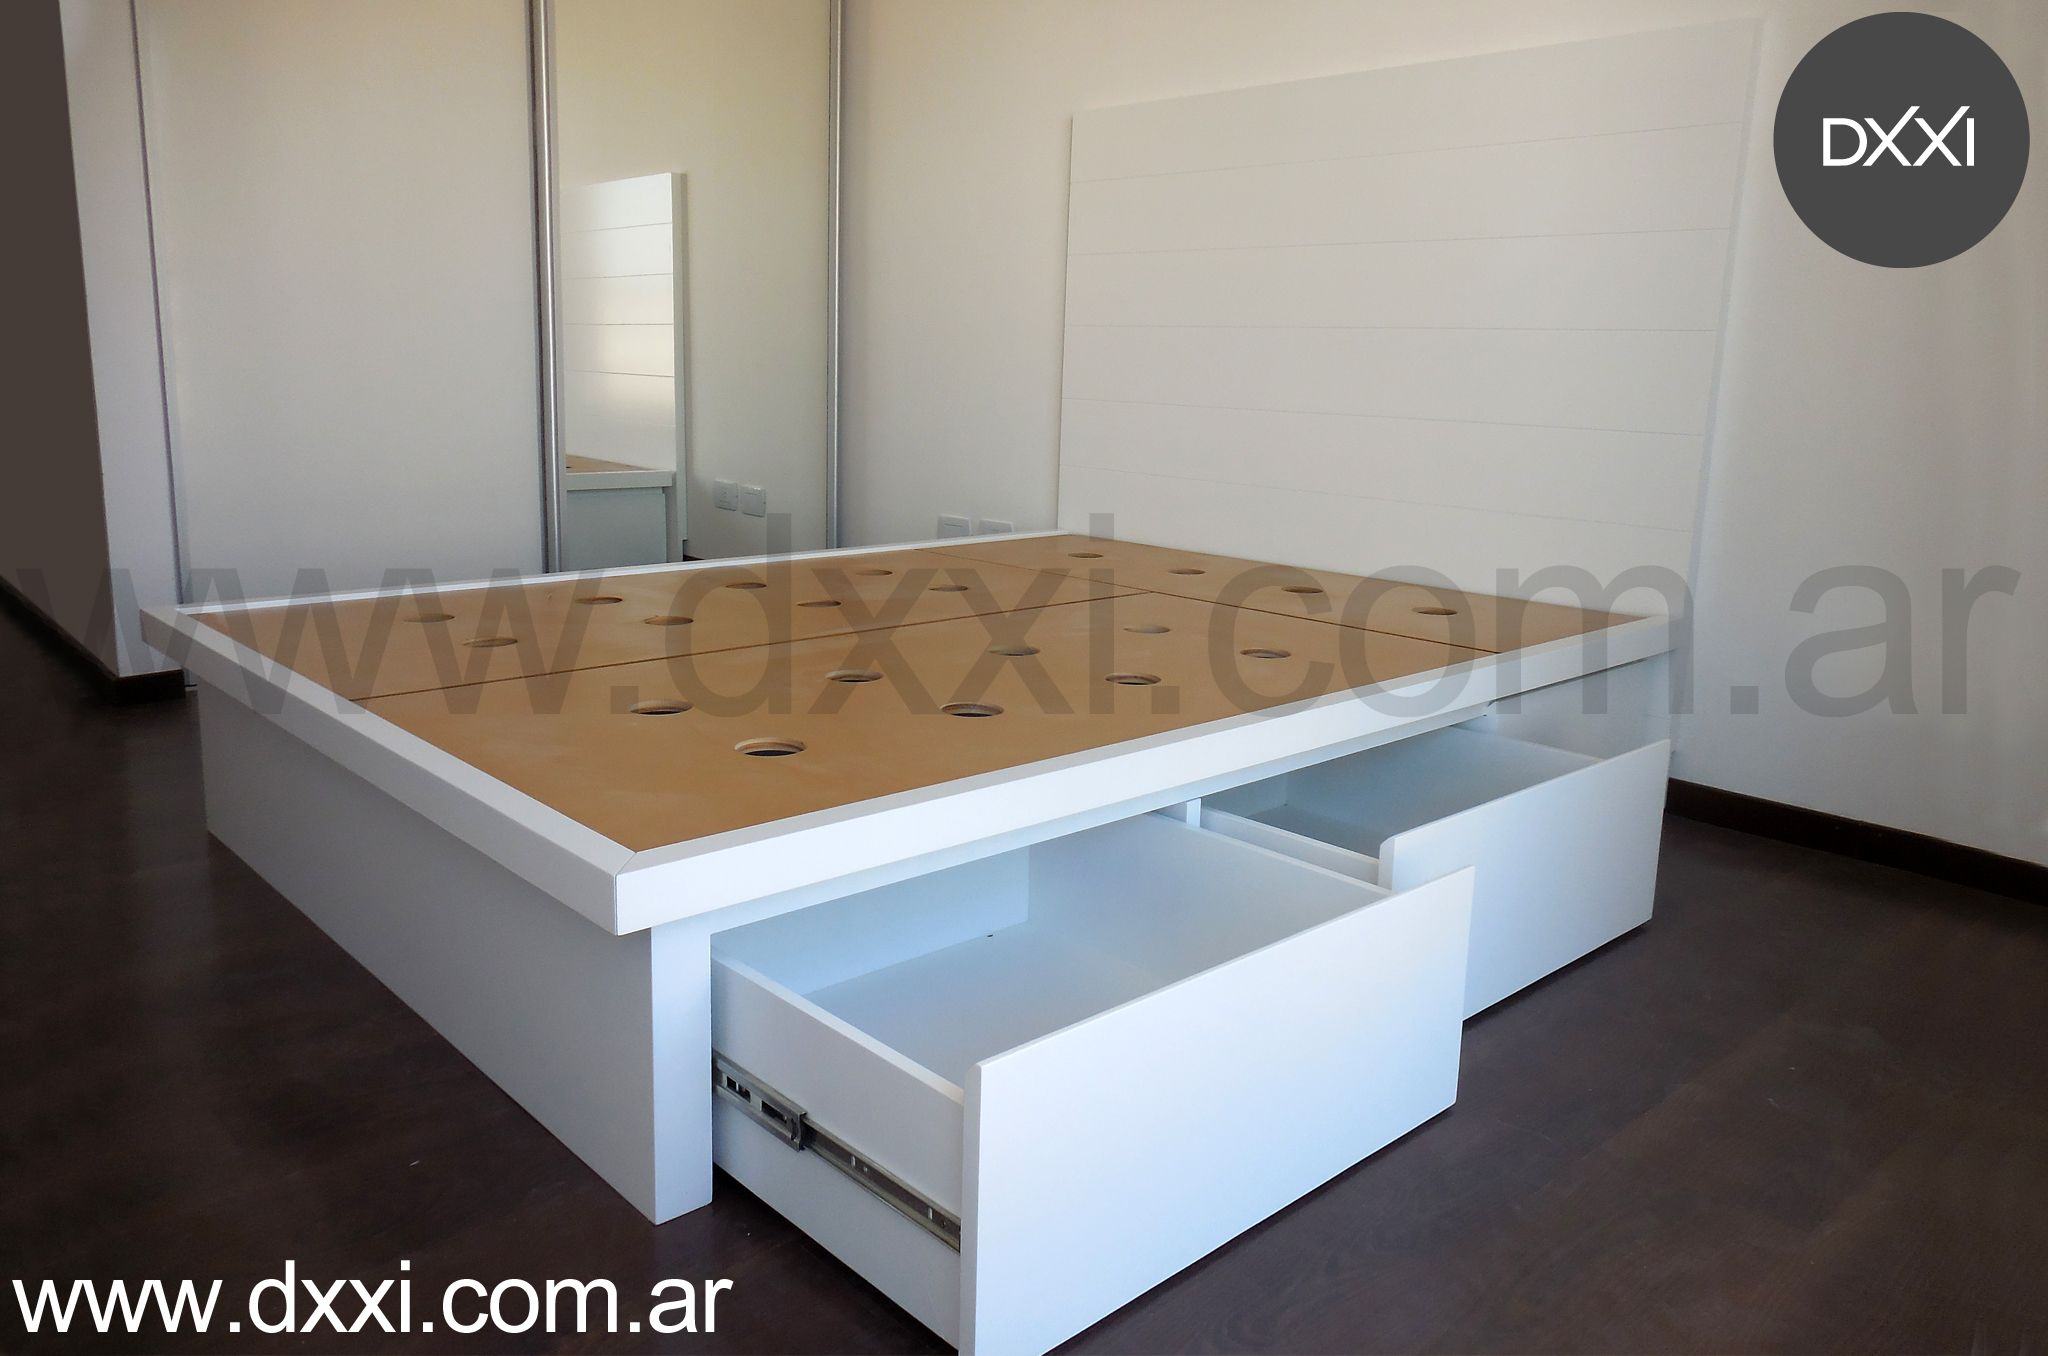 furniture designed manufactured by dxxi buenos aires ForCasa Silvia Muebles Y Colchones Olavarria Buenos Aires